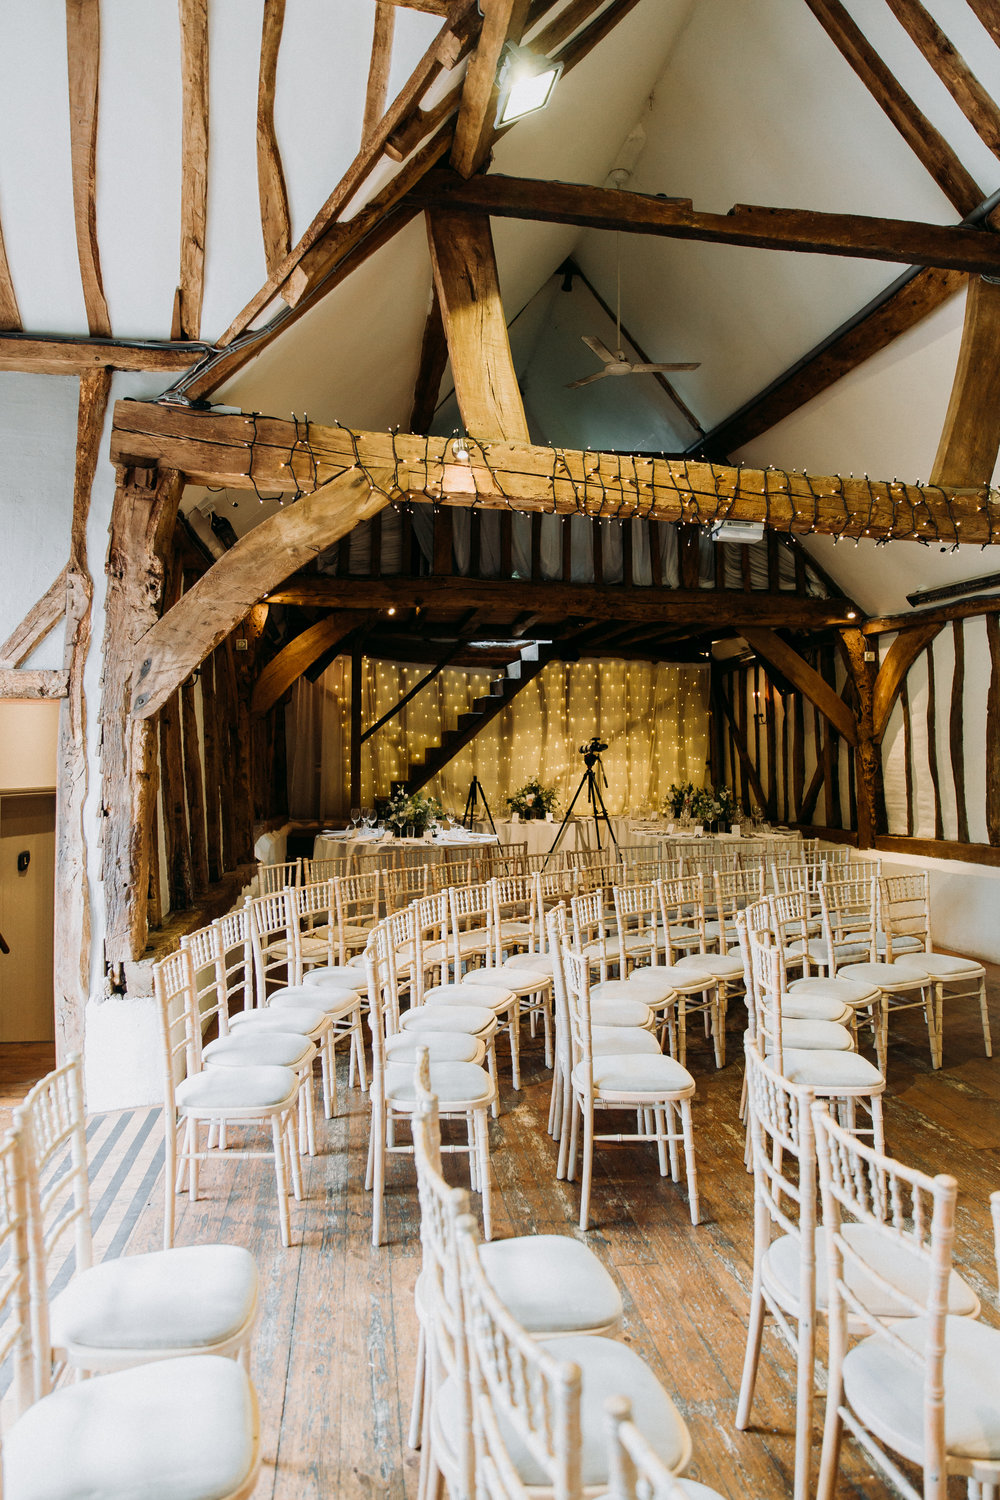 Old Luxter's Barn wedding venue at at Old Luxter's Barn at The Chilterns wedding